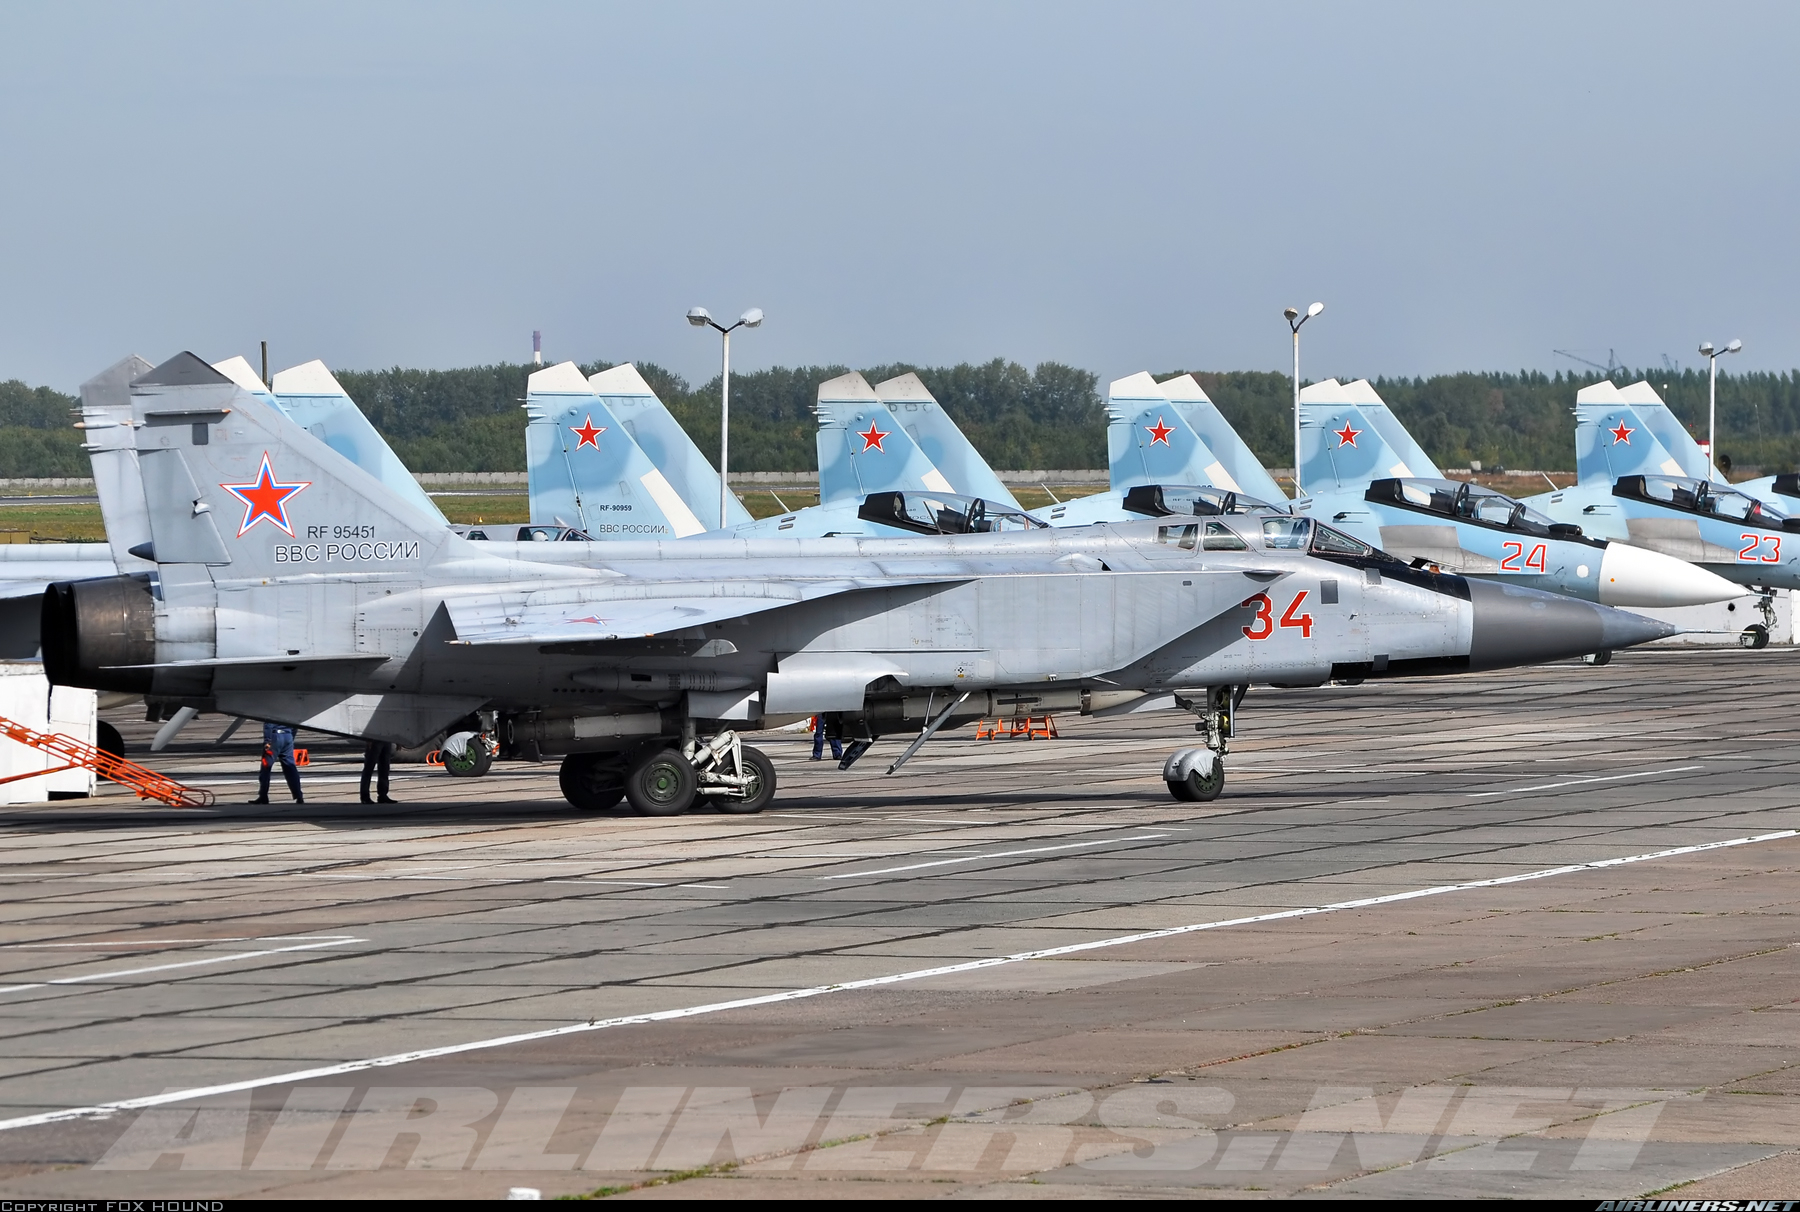 Mikoyan-Gurevich MiG-31BM - Russia - Air Force | Aviation Photo #4881259 | Airliners.net